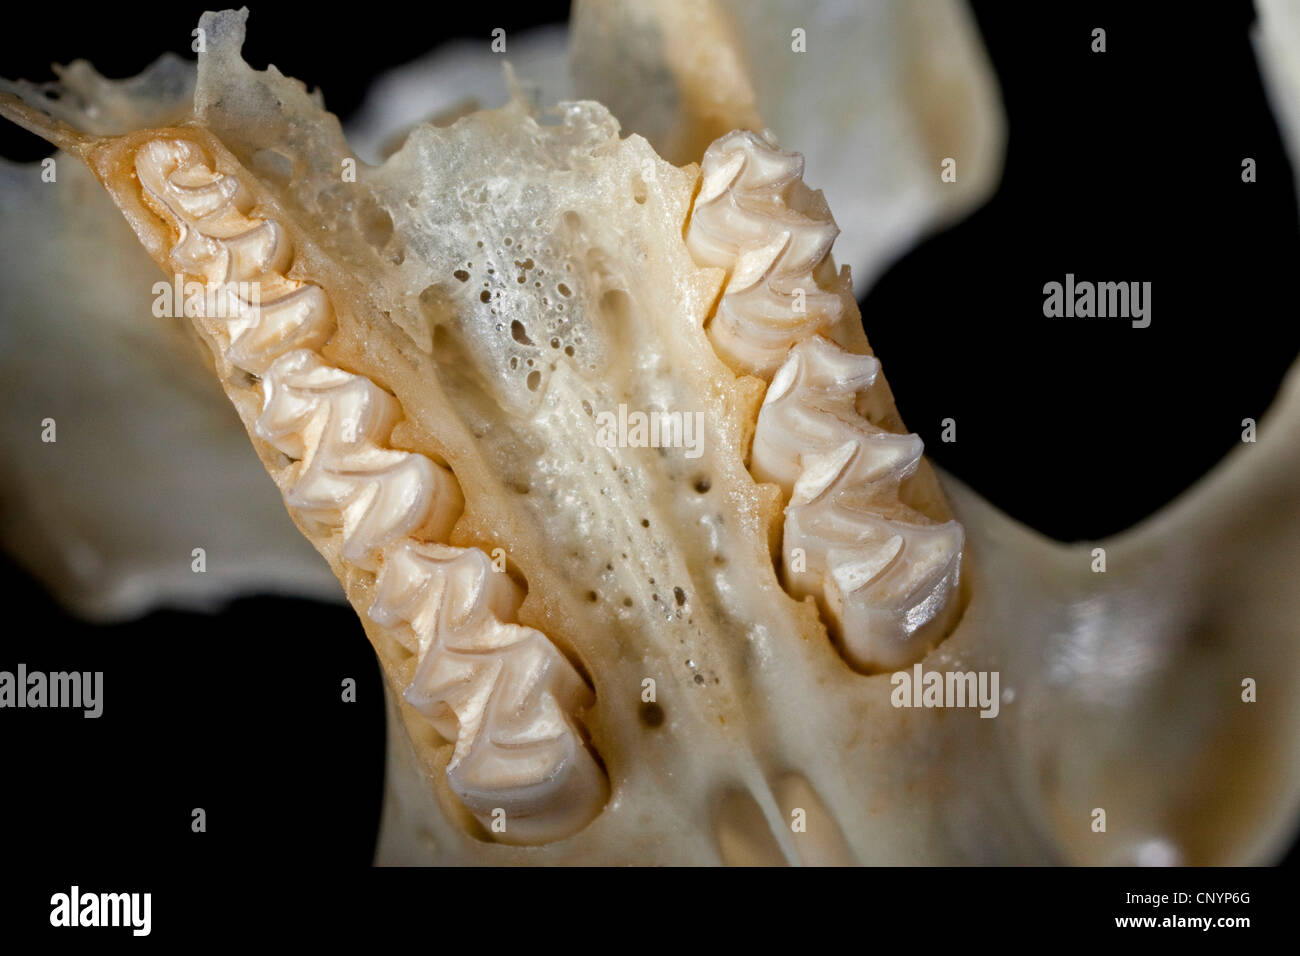 Barn owl (Tyto alba), upper jaw of a mouse, undigested food residue from a pellet - Stock Image